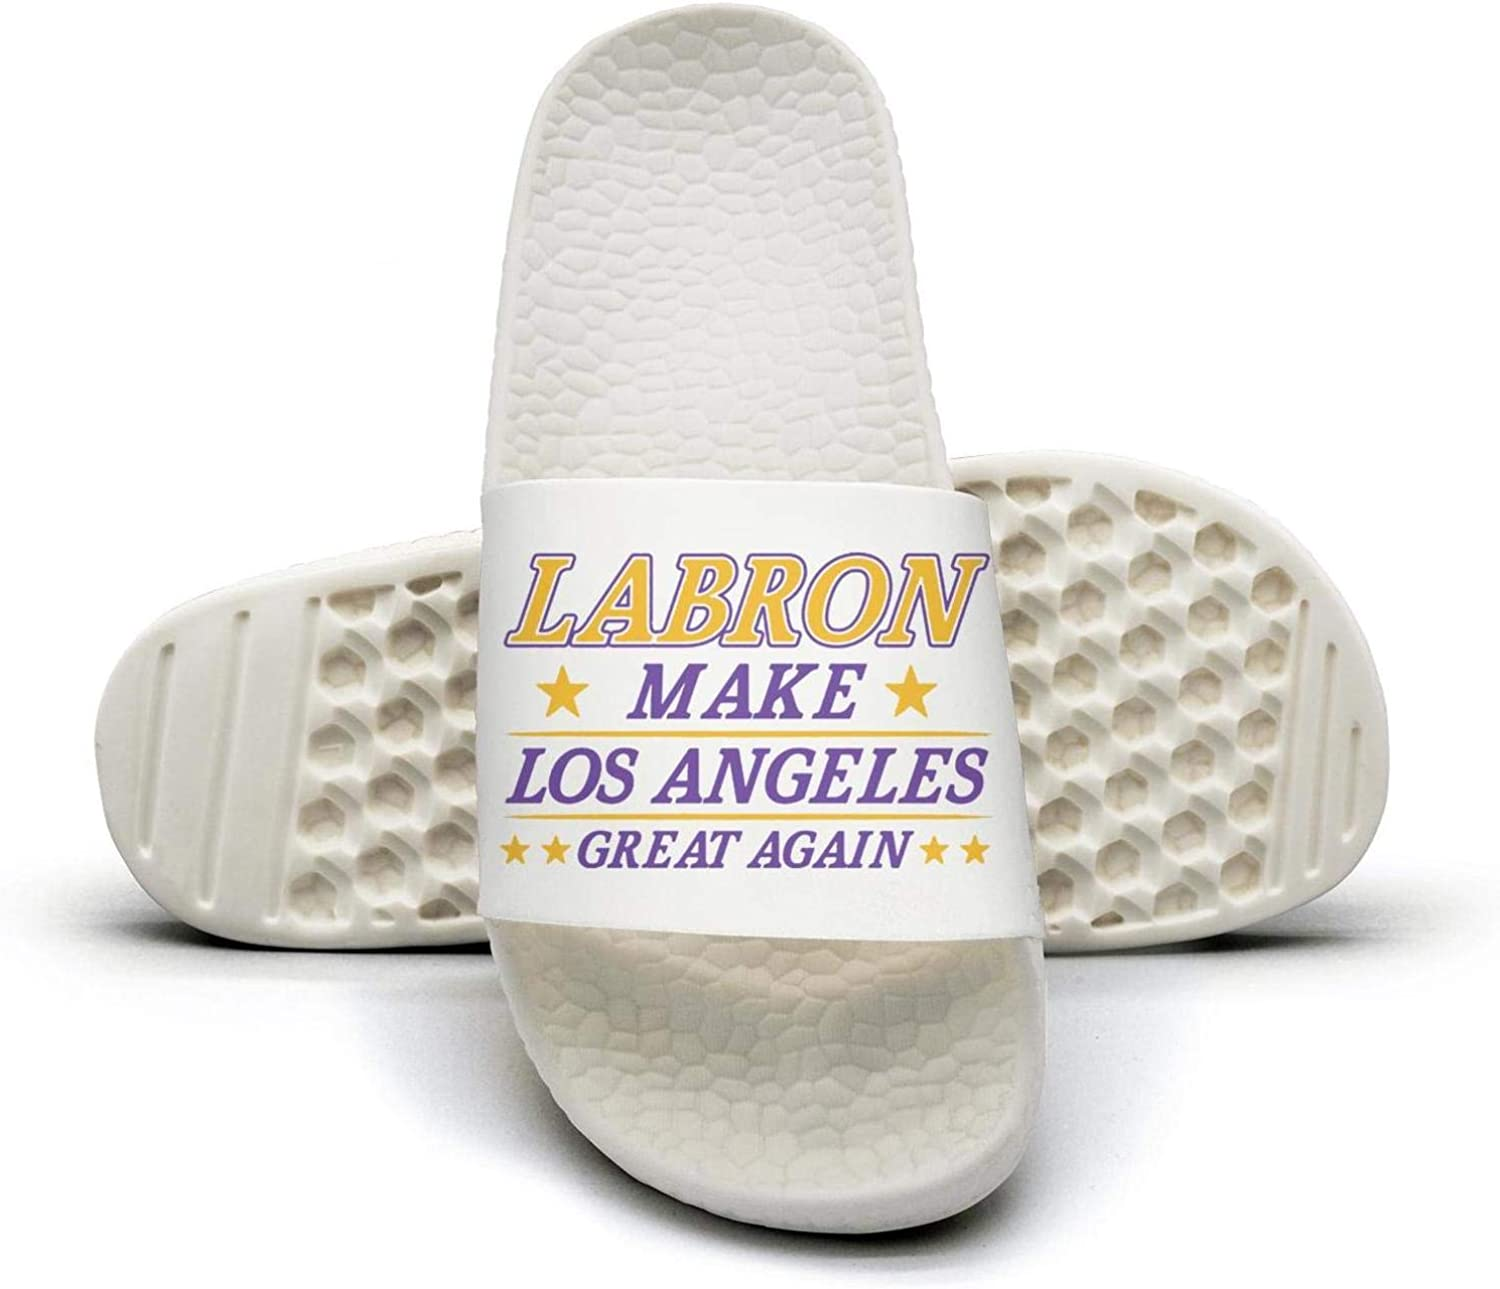 ADIDII Womens Printed Non-Slip Slippers Slide flip Flop Sandals labron_Make_L.A_Great Again Summer Stylish